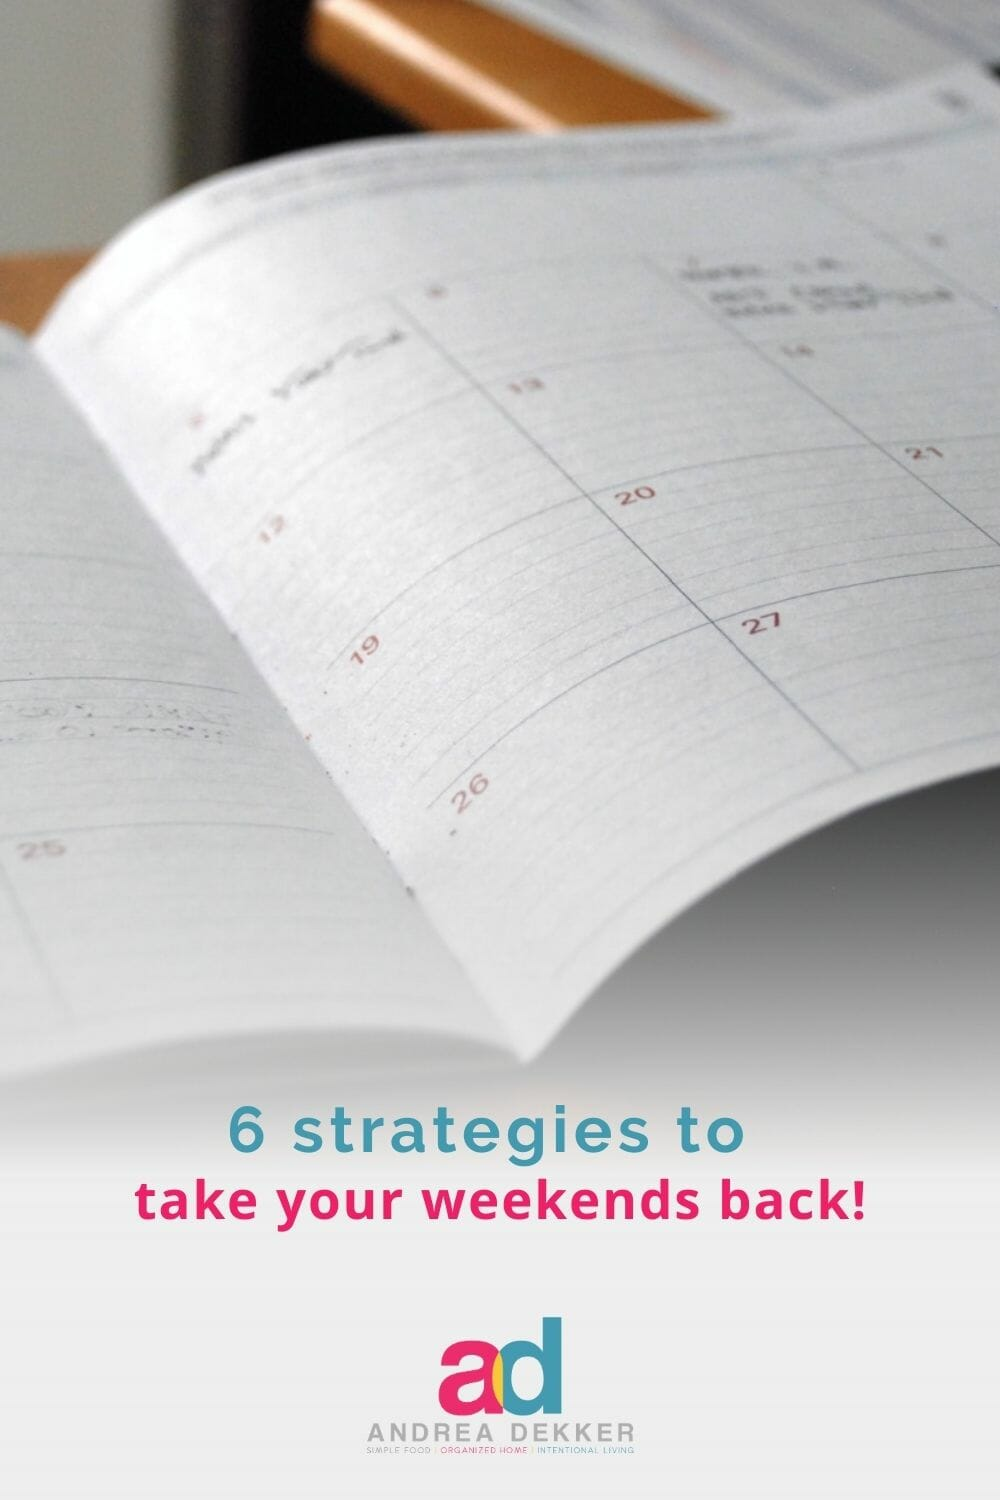 6 strategies to take your weekends back for good